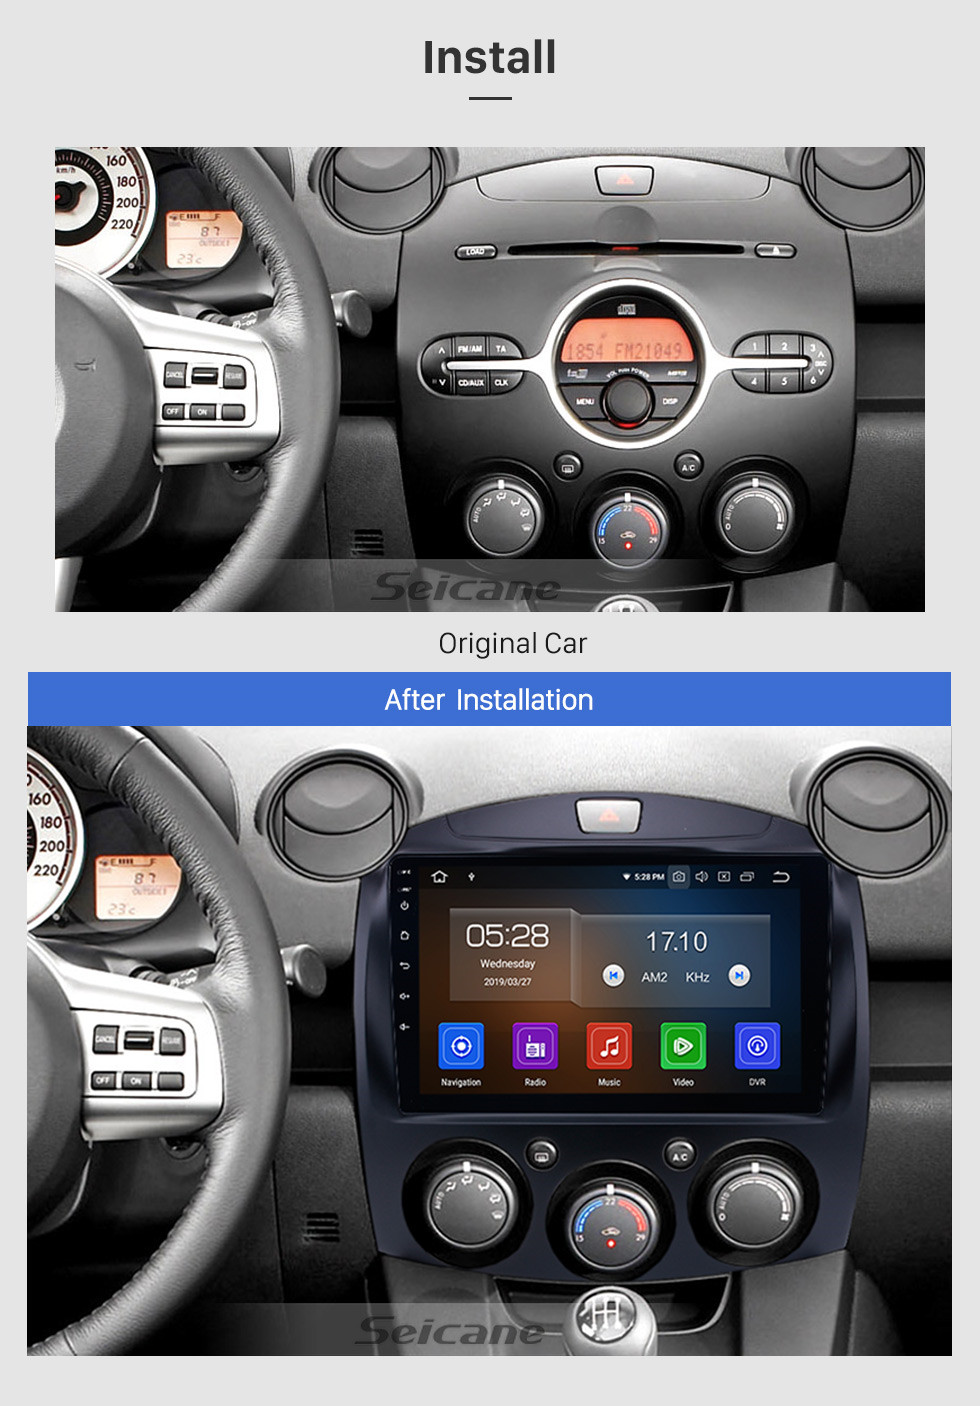 Seicane OEM HD Touchscreen GPS navigation system Android 9.0 for 2007-2014 Mazda 2 Support Radio Vedio Carplay Remote Control Bluetooth